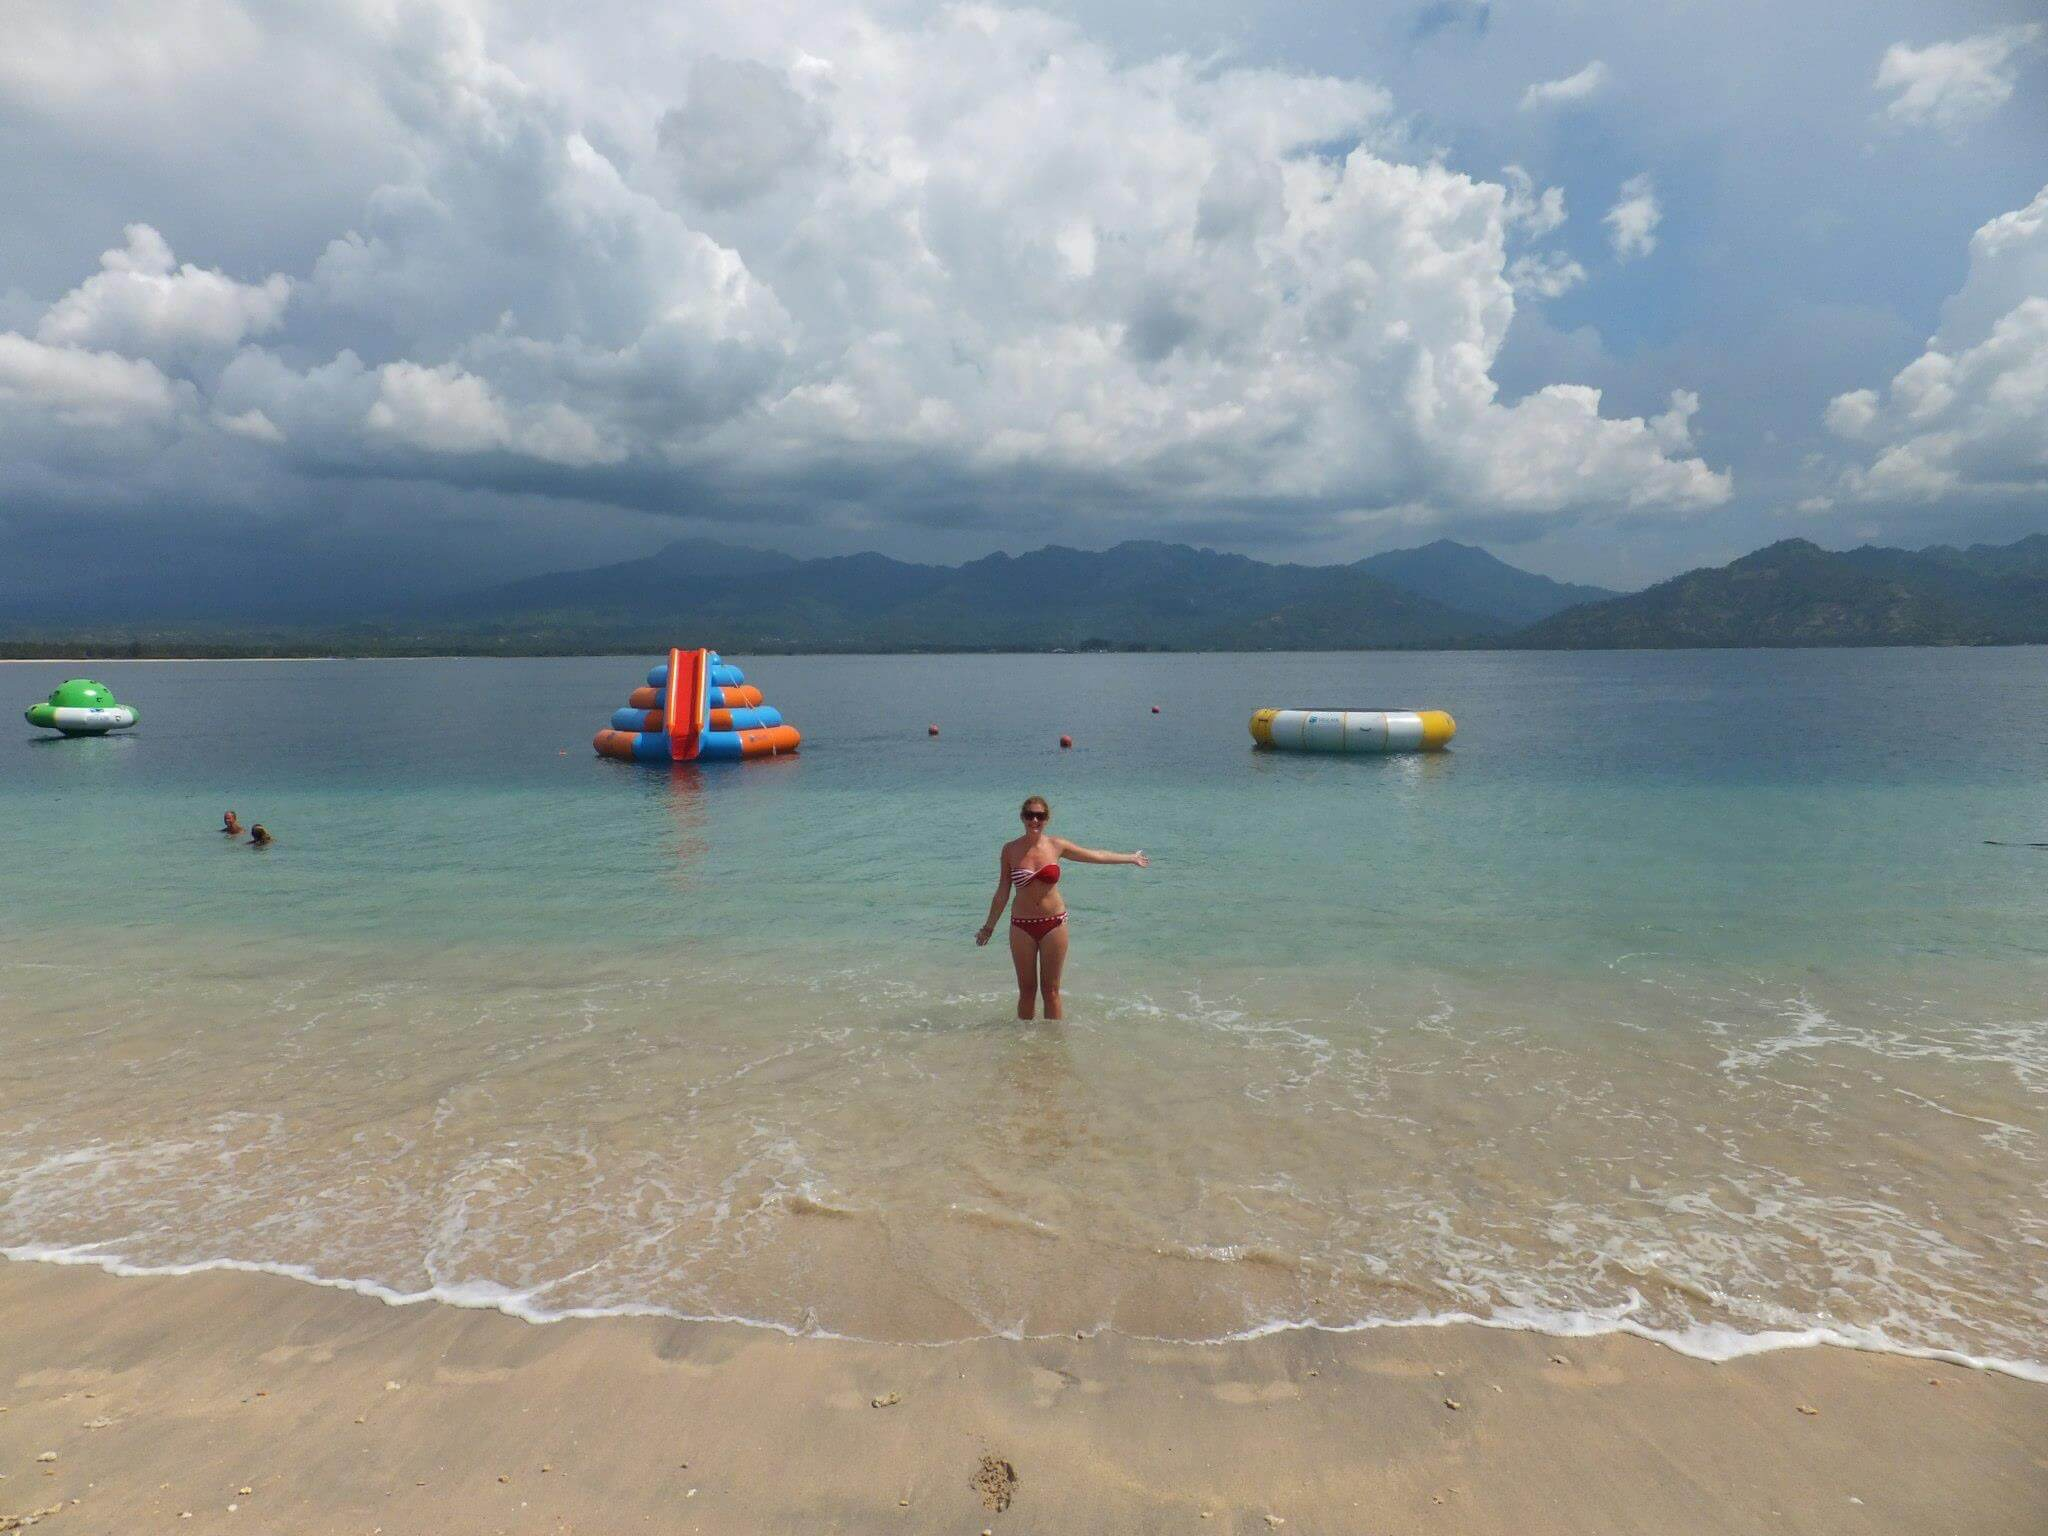 How To Get To Gili Islands From Perth